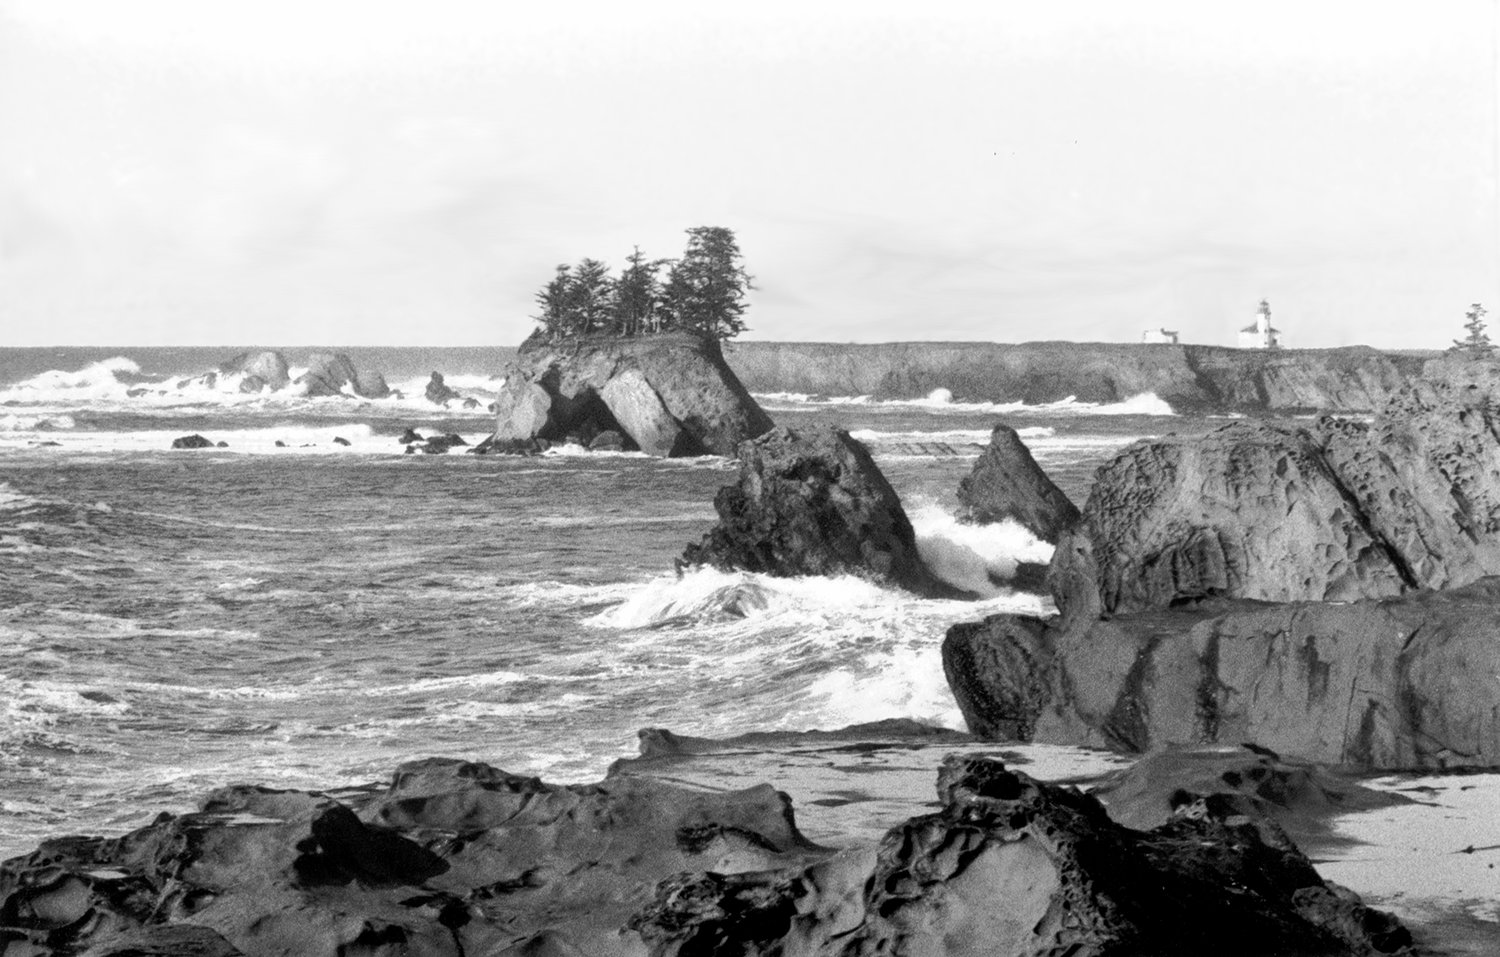 Black and white photo of a rocky beach and surf with a lighthouse in the distance